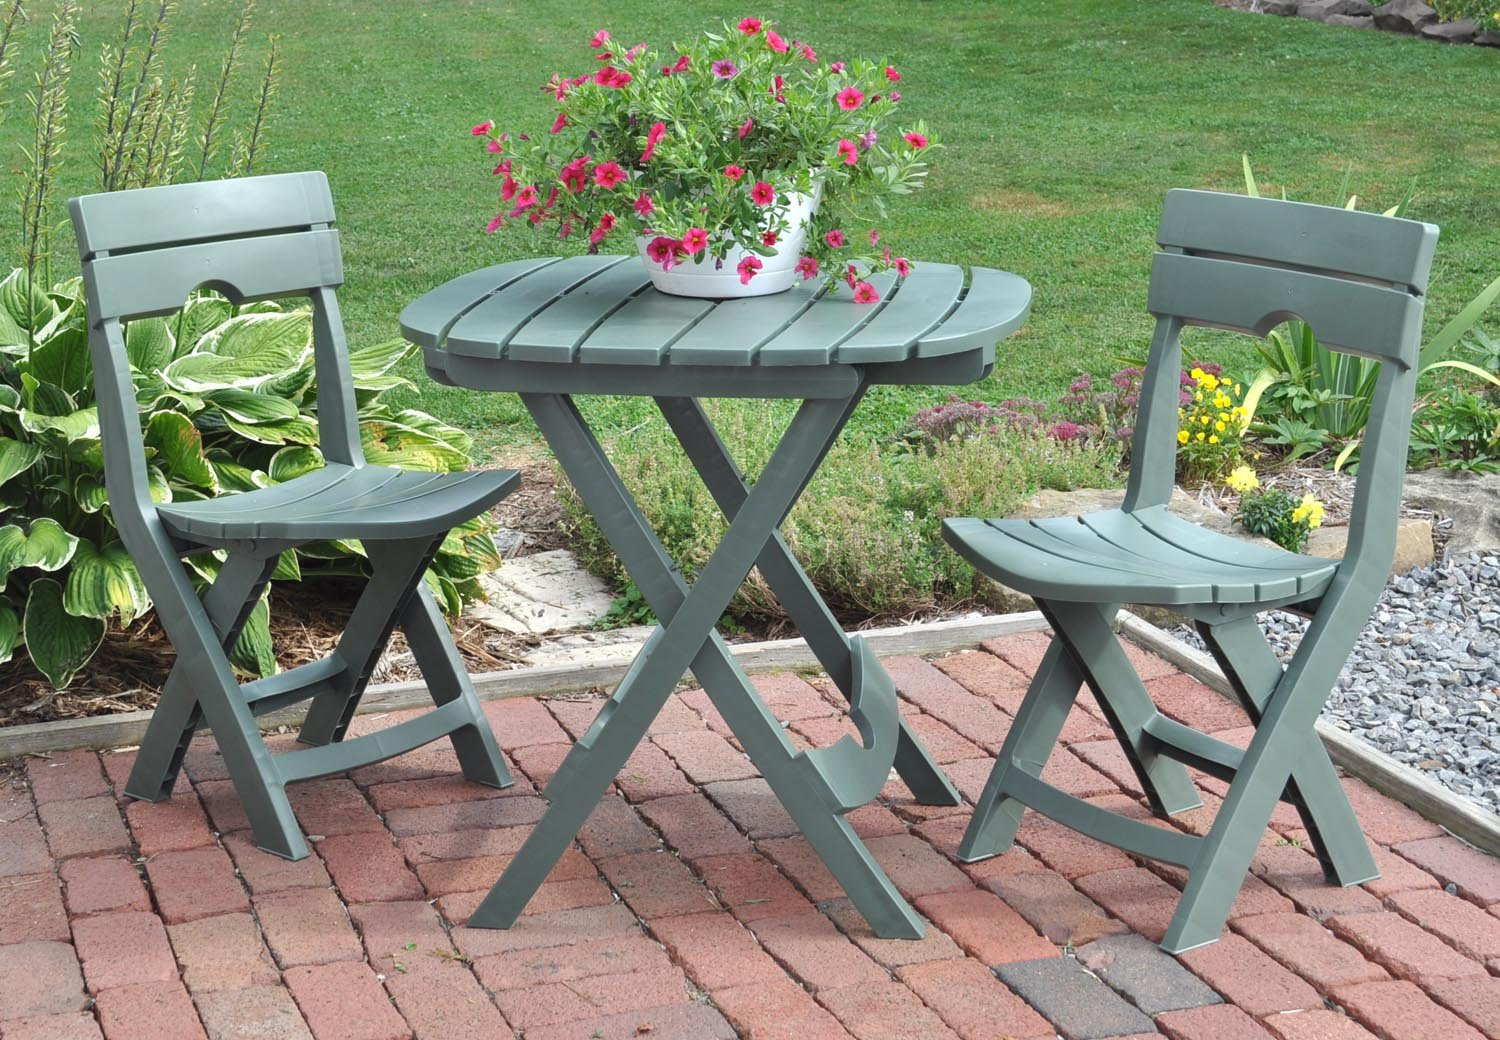 Wonderful Amazon.com : Adams Manufacturing 8590 01 3731 Quik Fold Cafe Bistro Set,  Sage : Outdoor And Patio Furniture Sets : Garden U0026 Outdoor